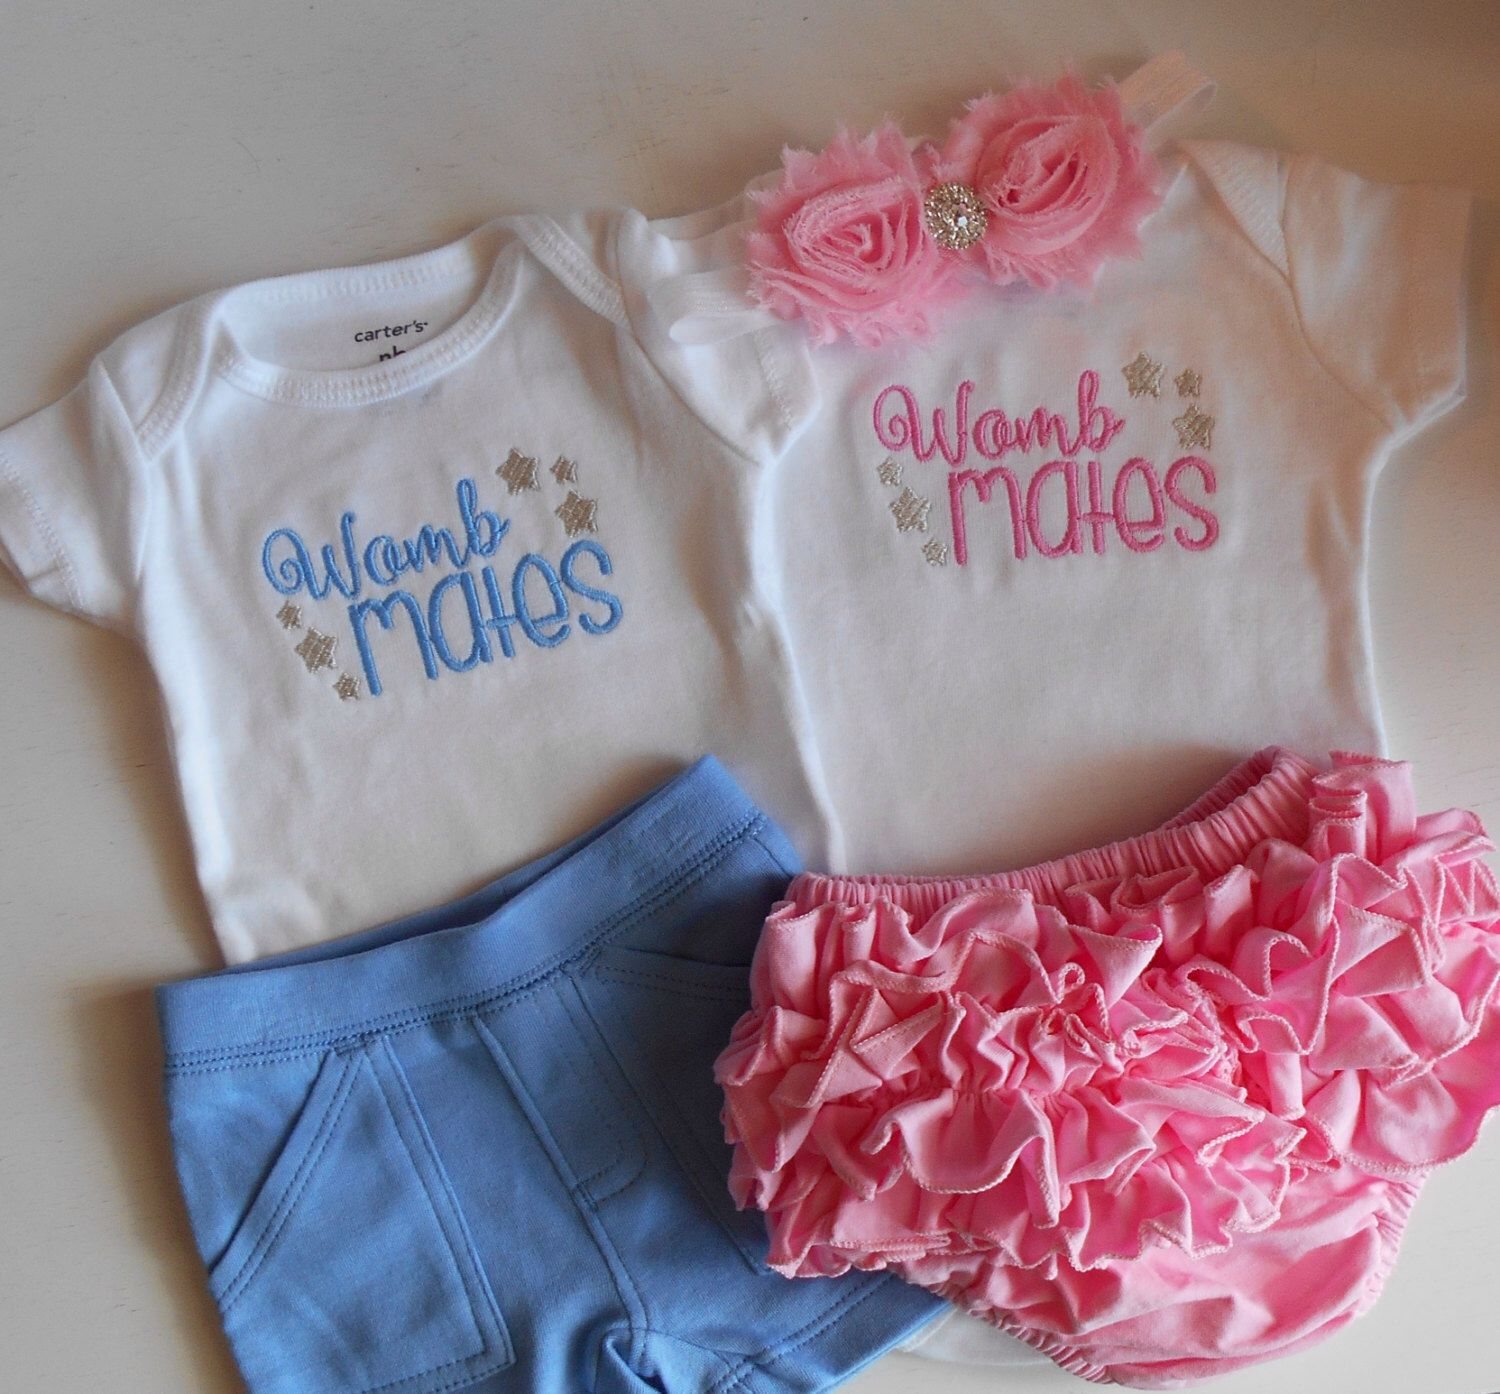 94c3cc63b30f Items similar to Twins Womb Mates Newborn baby take home outfit gender  reveal bodysuit pants headband pink blue baby girl boy outfit bring home  coming home ...